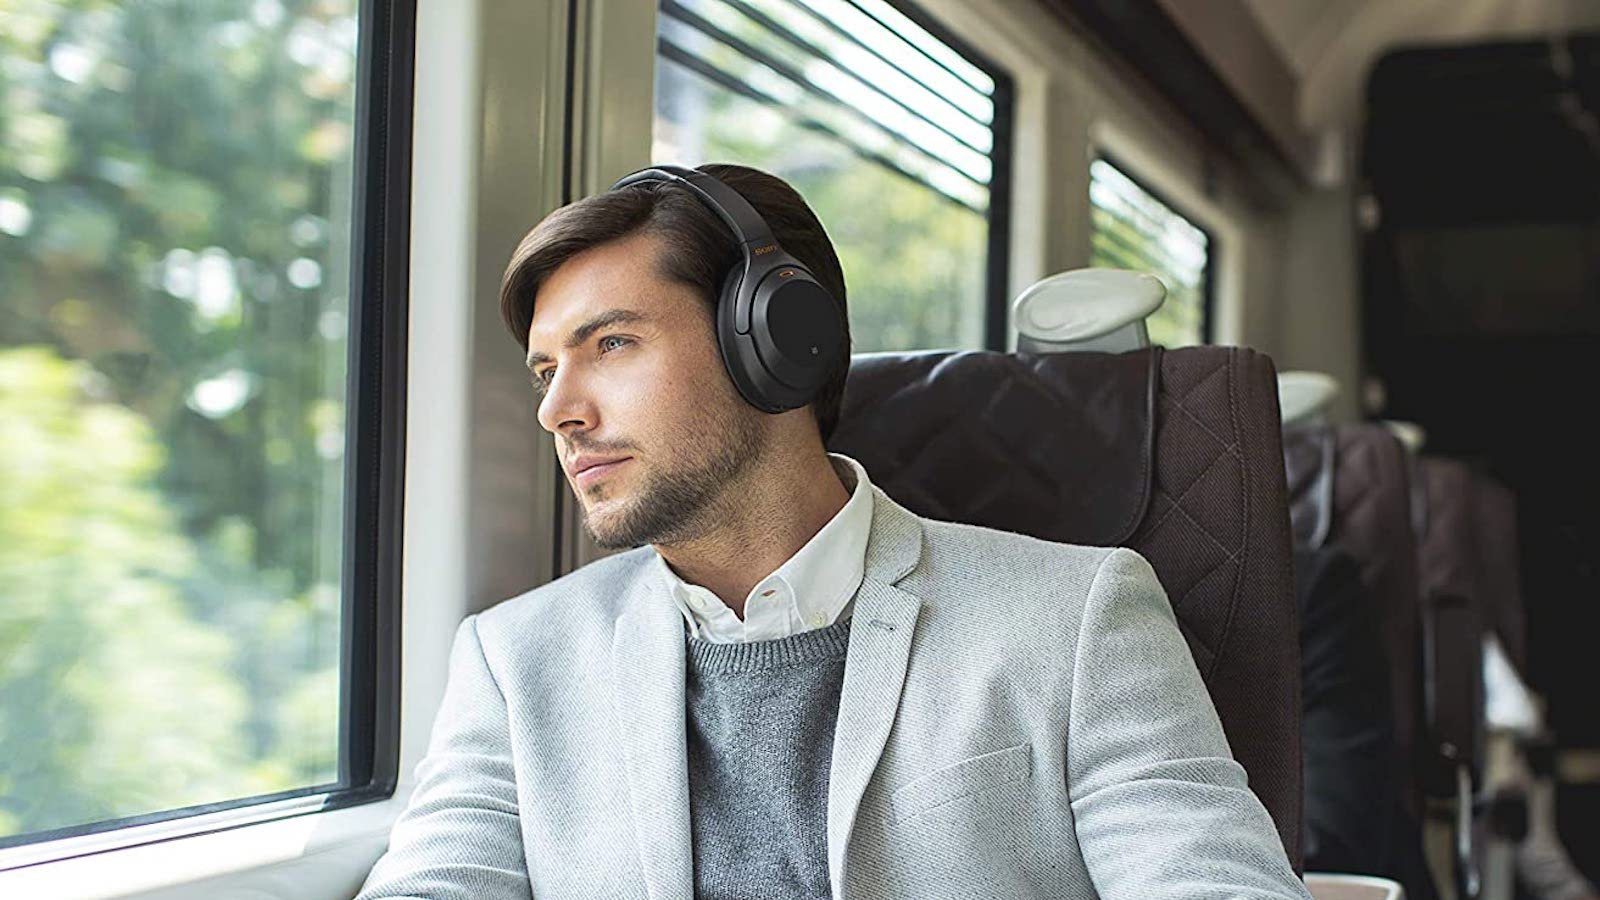 Sony WH-1000XM3 Smart Wireless Headphones completely immerse you with noise cancellation